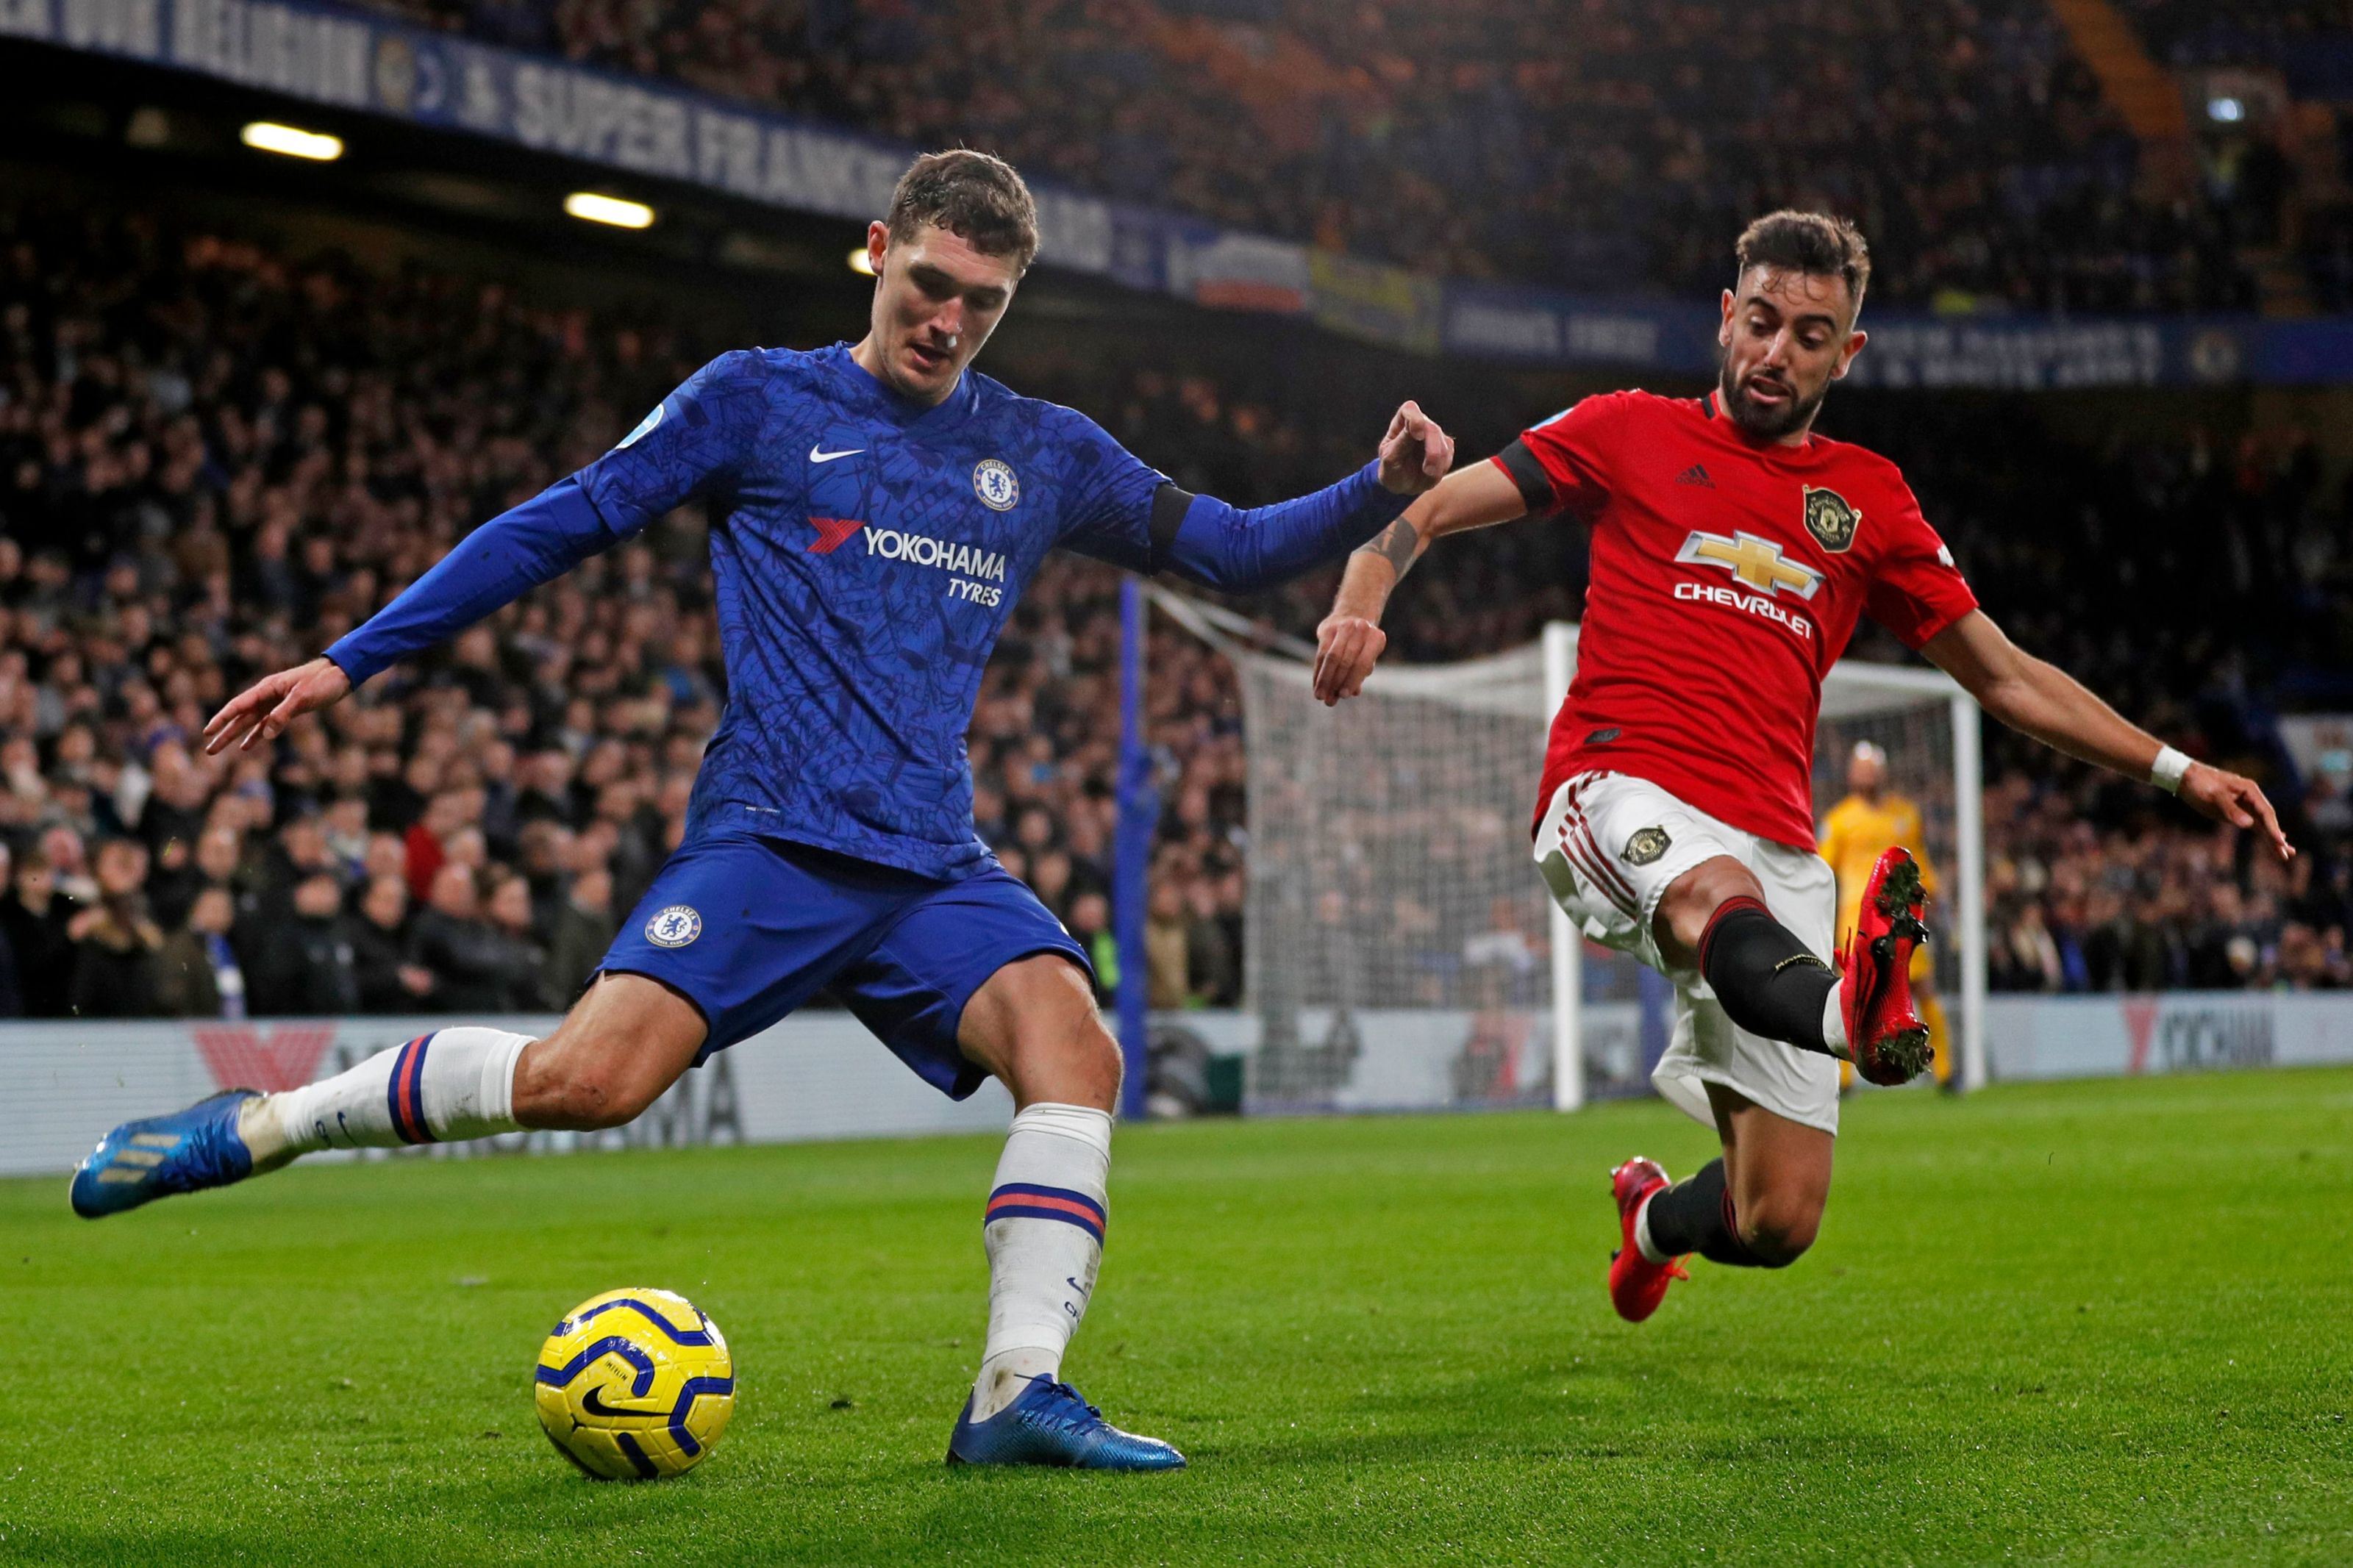 Chelsea: If Andreas Christensen is not a starter, it is time to move on